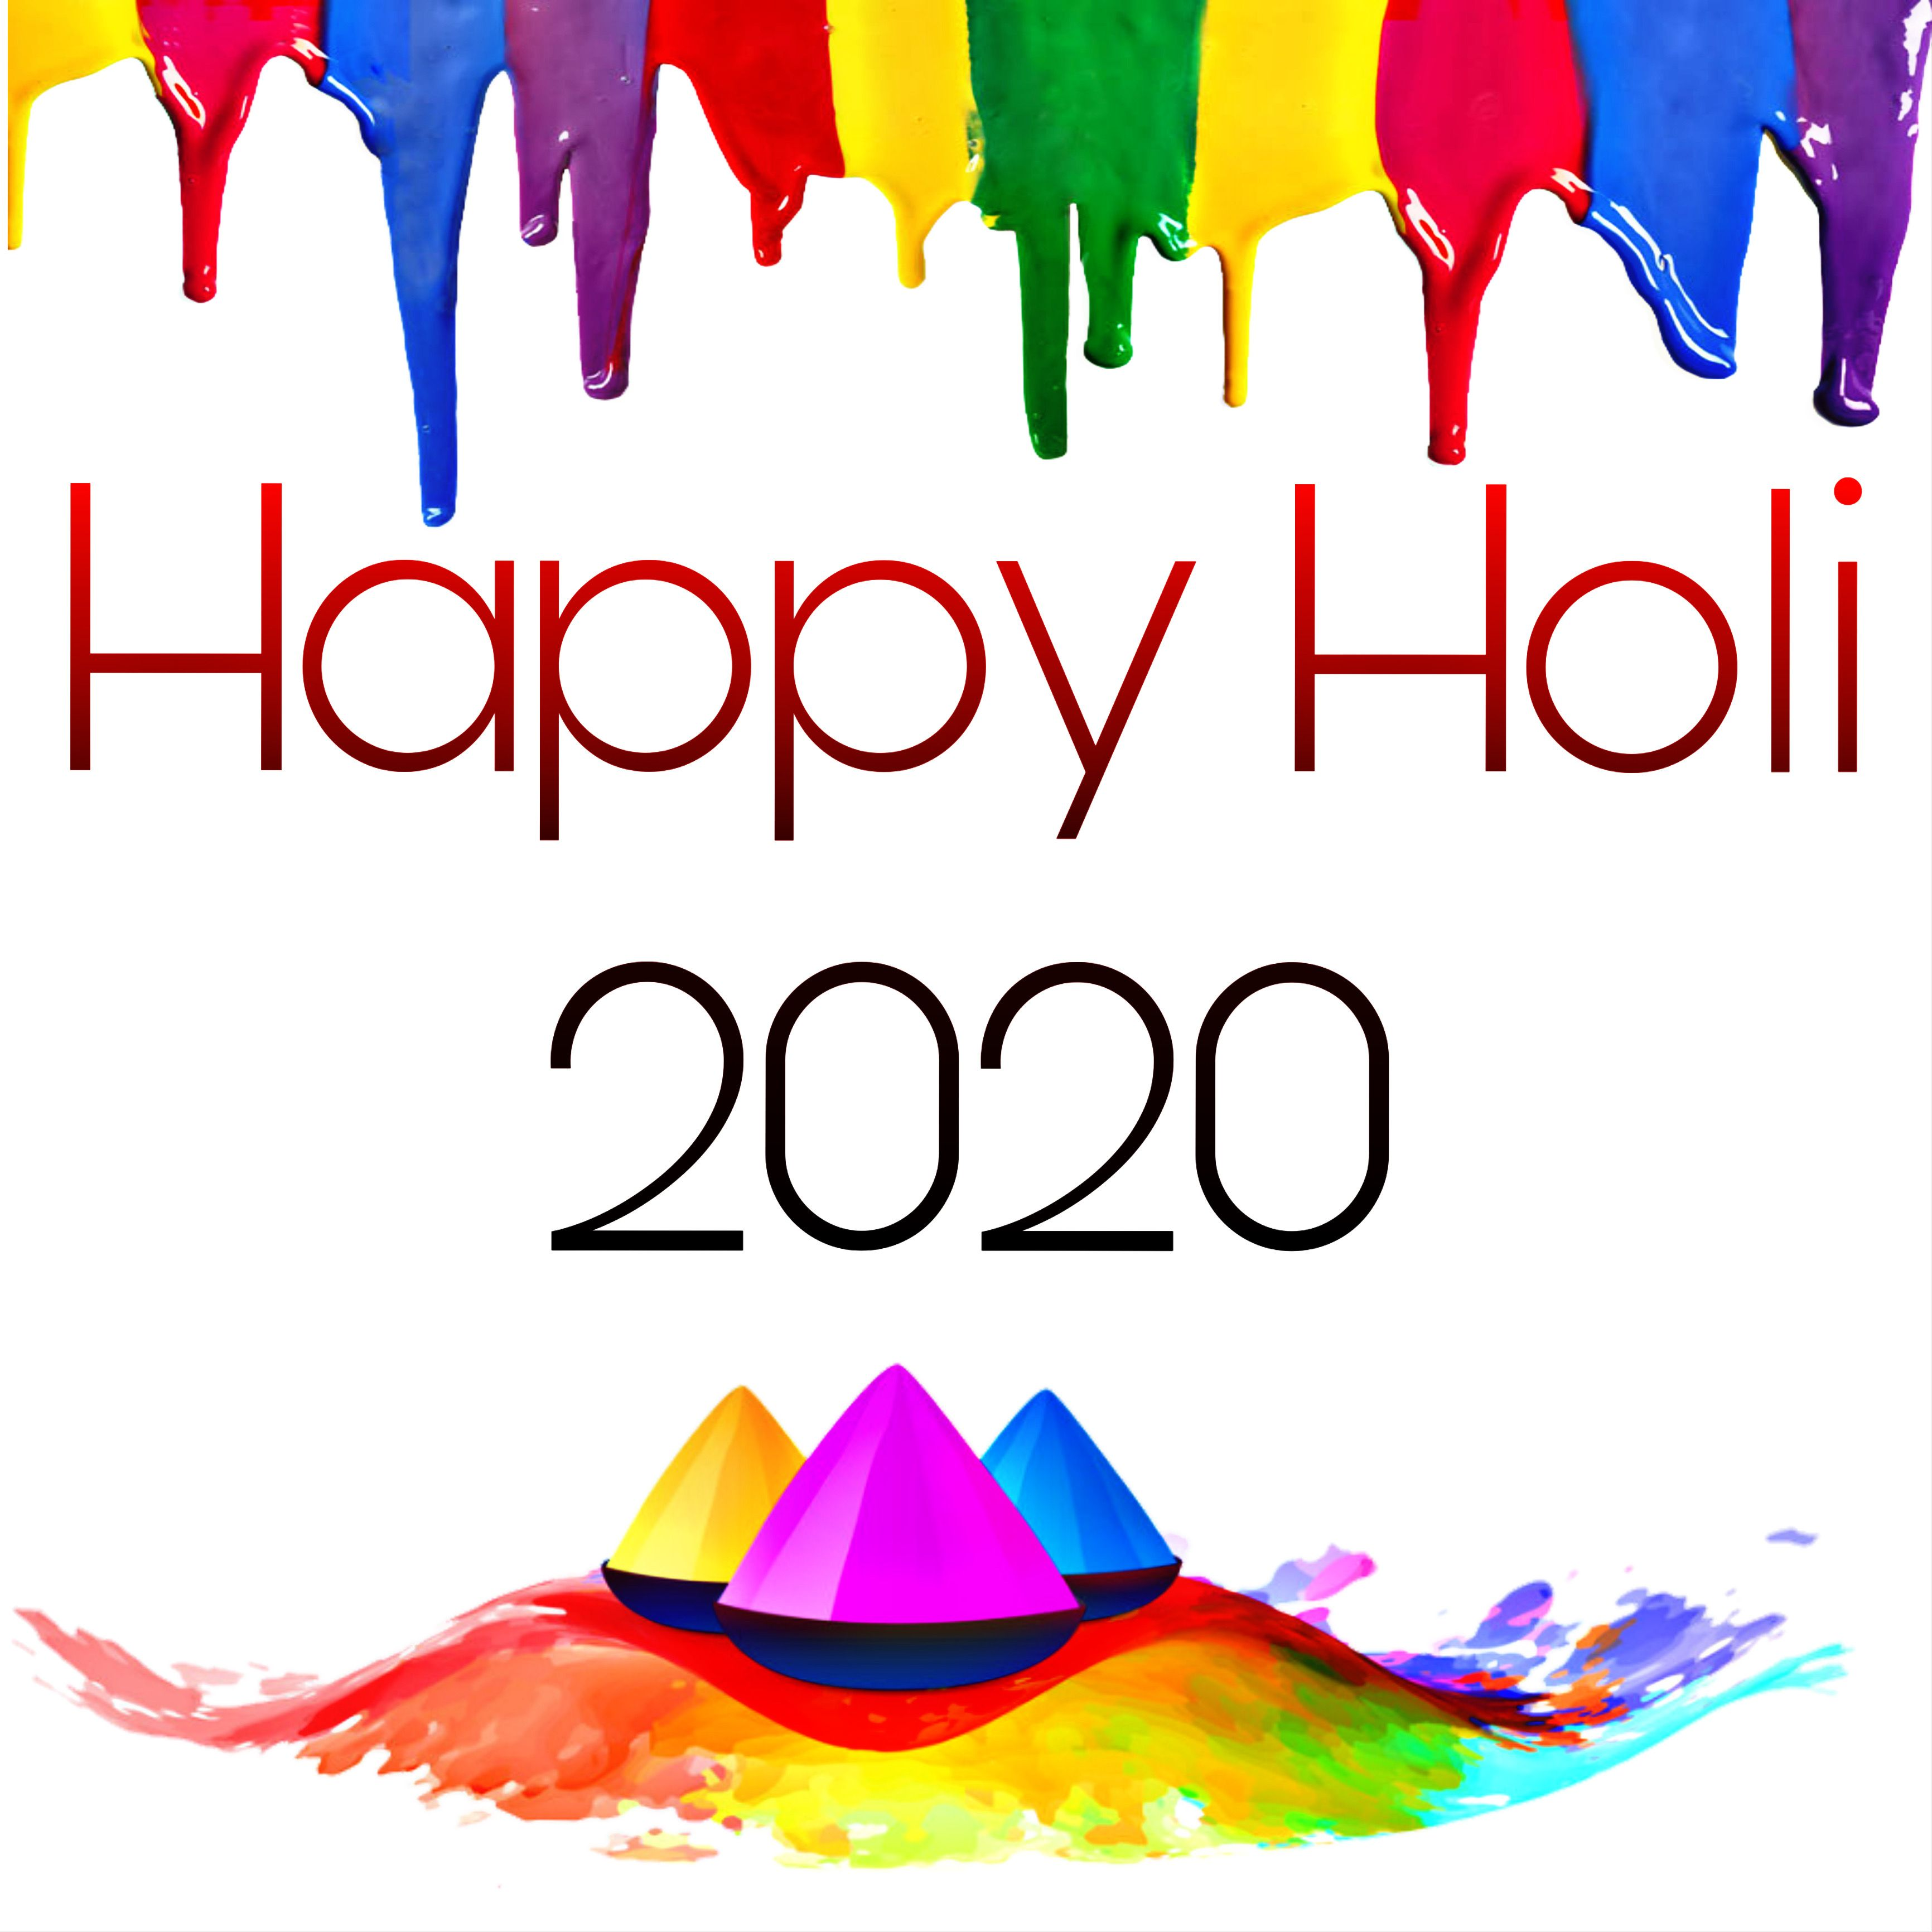 Happy Holi 2020 Images in 2020 (With images) Happy holi